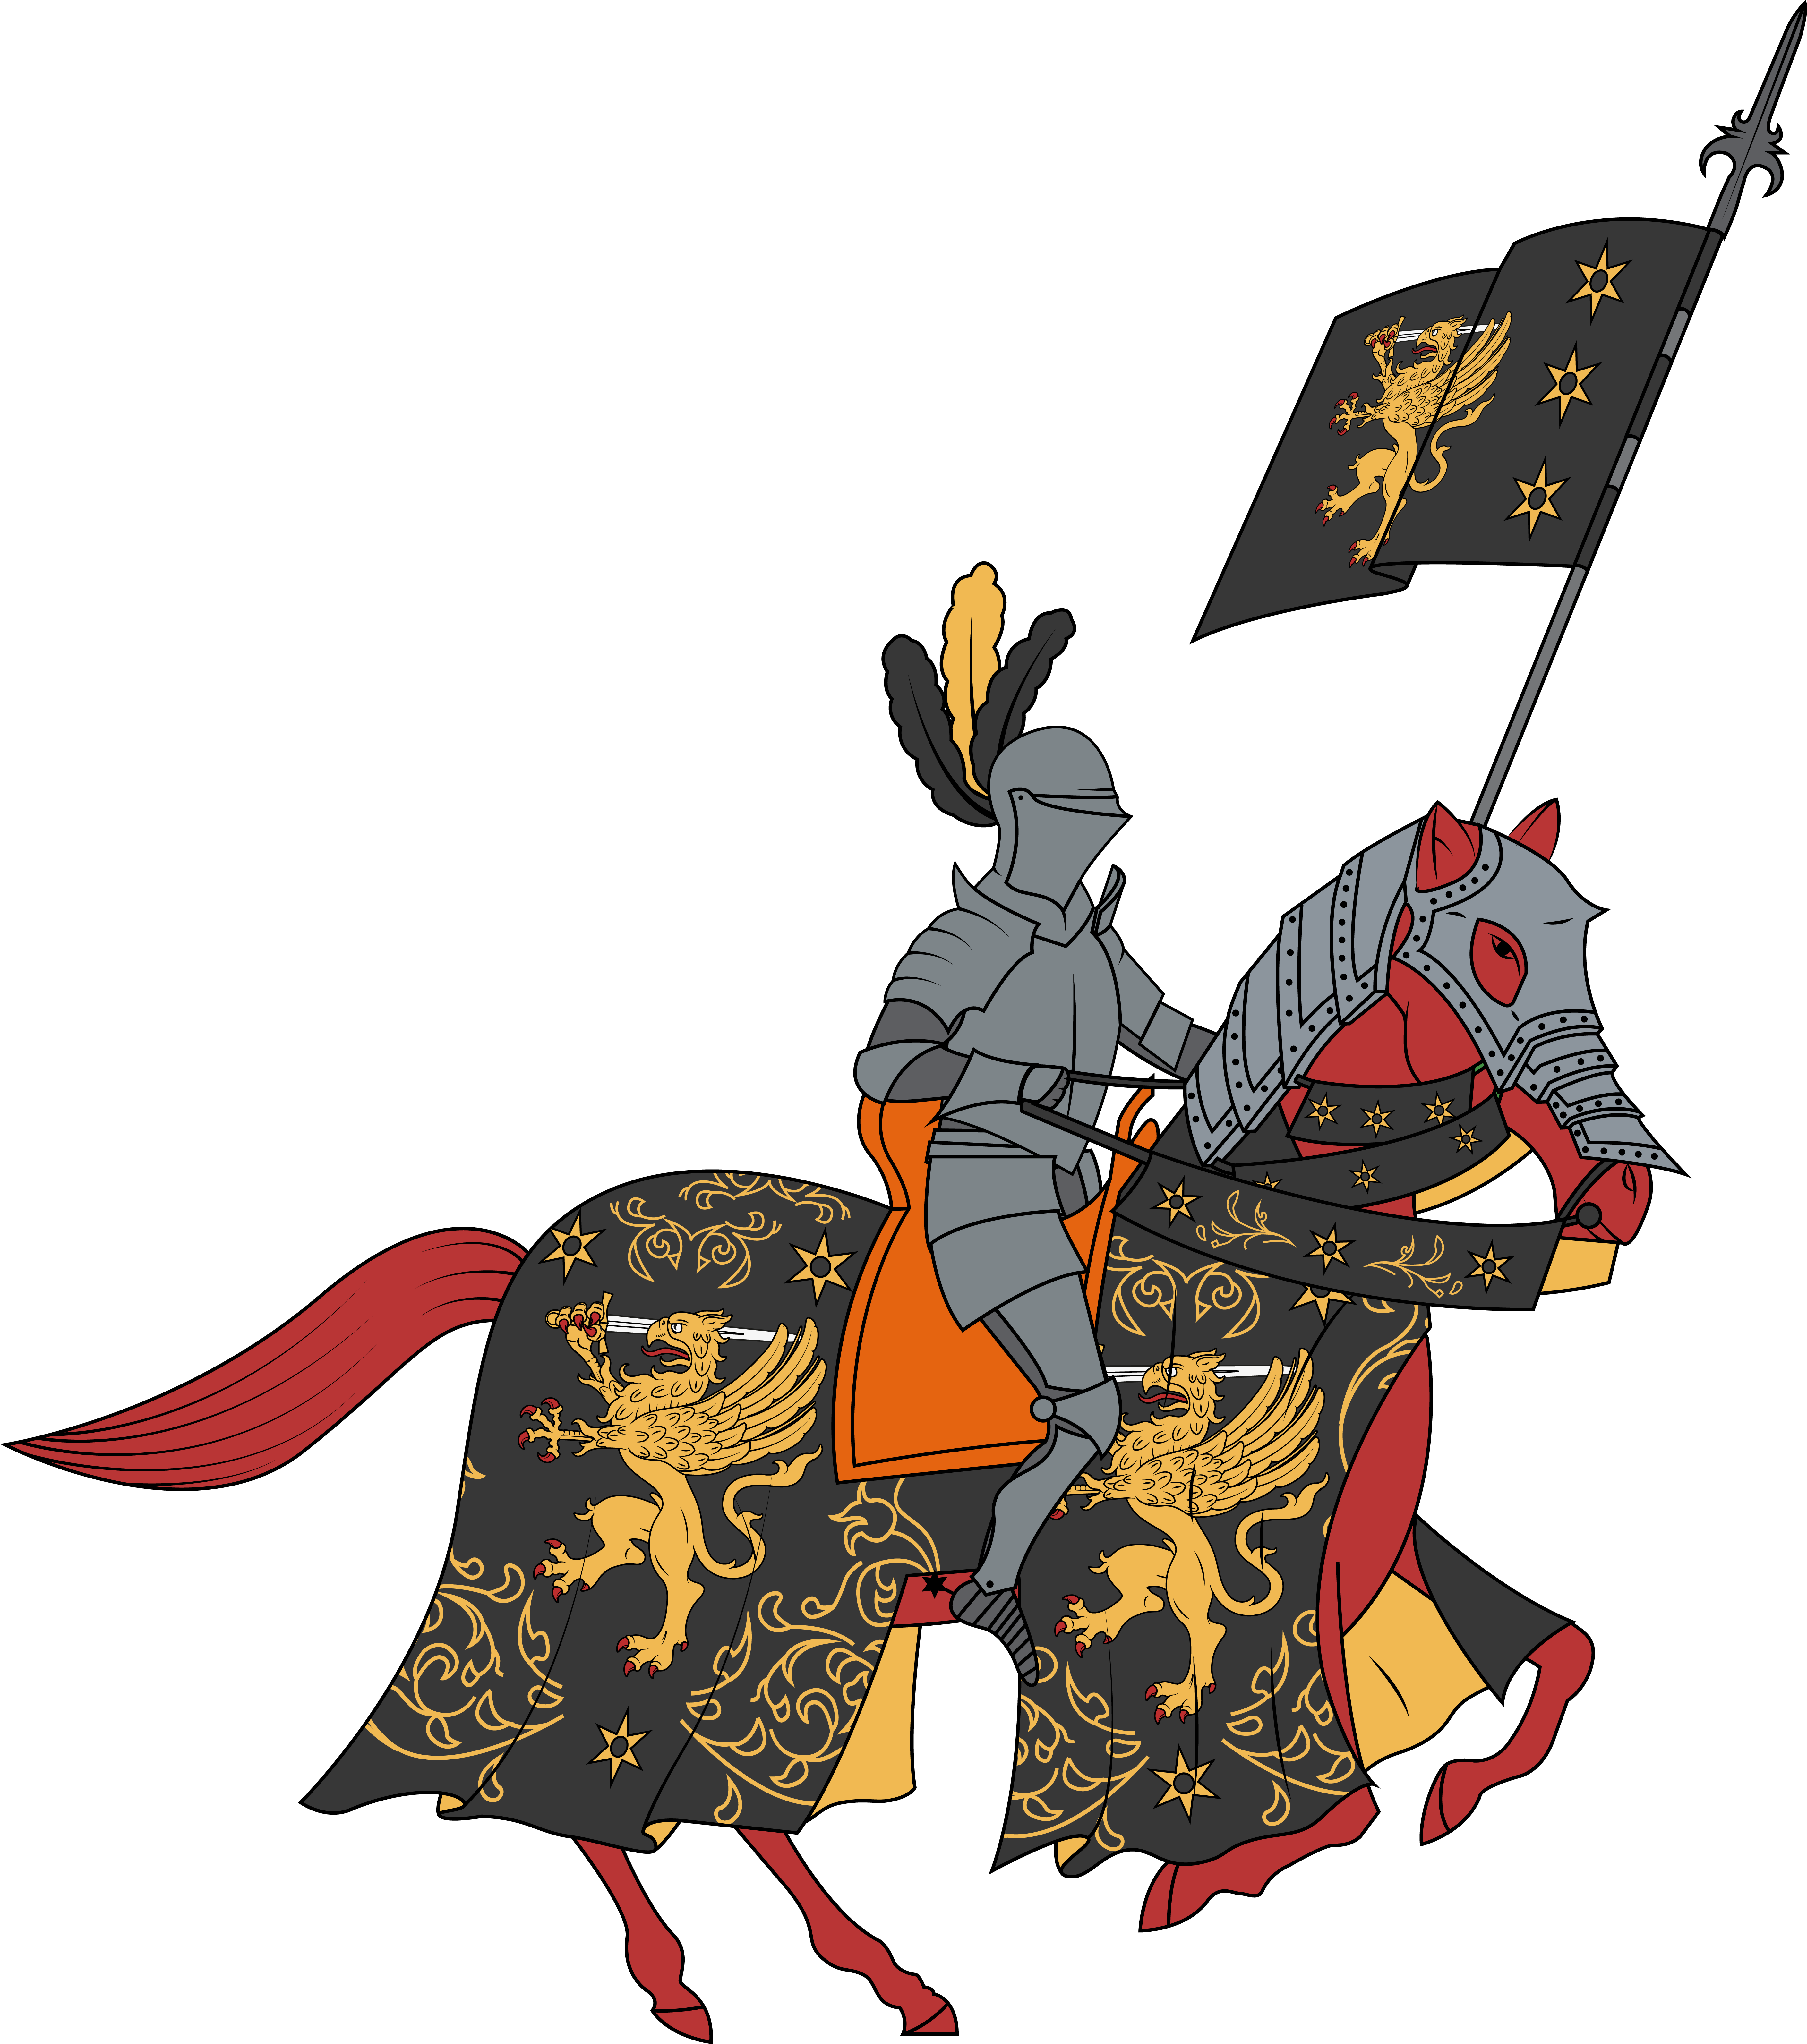 Knight renaissance frames illustrations. Knights clipart charger